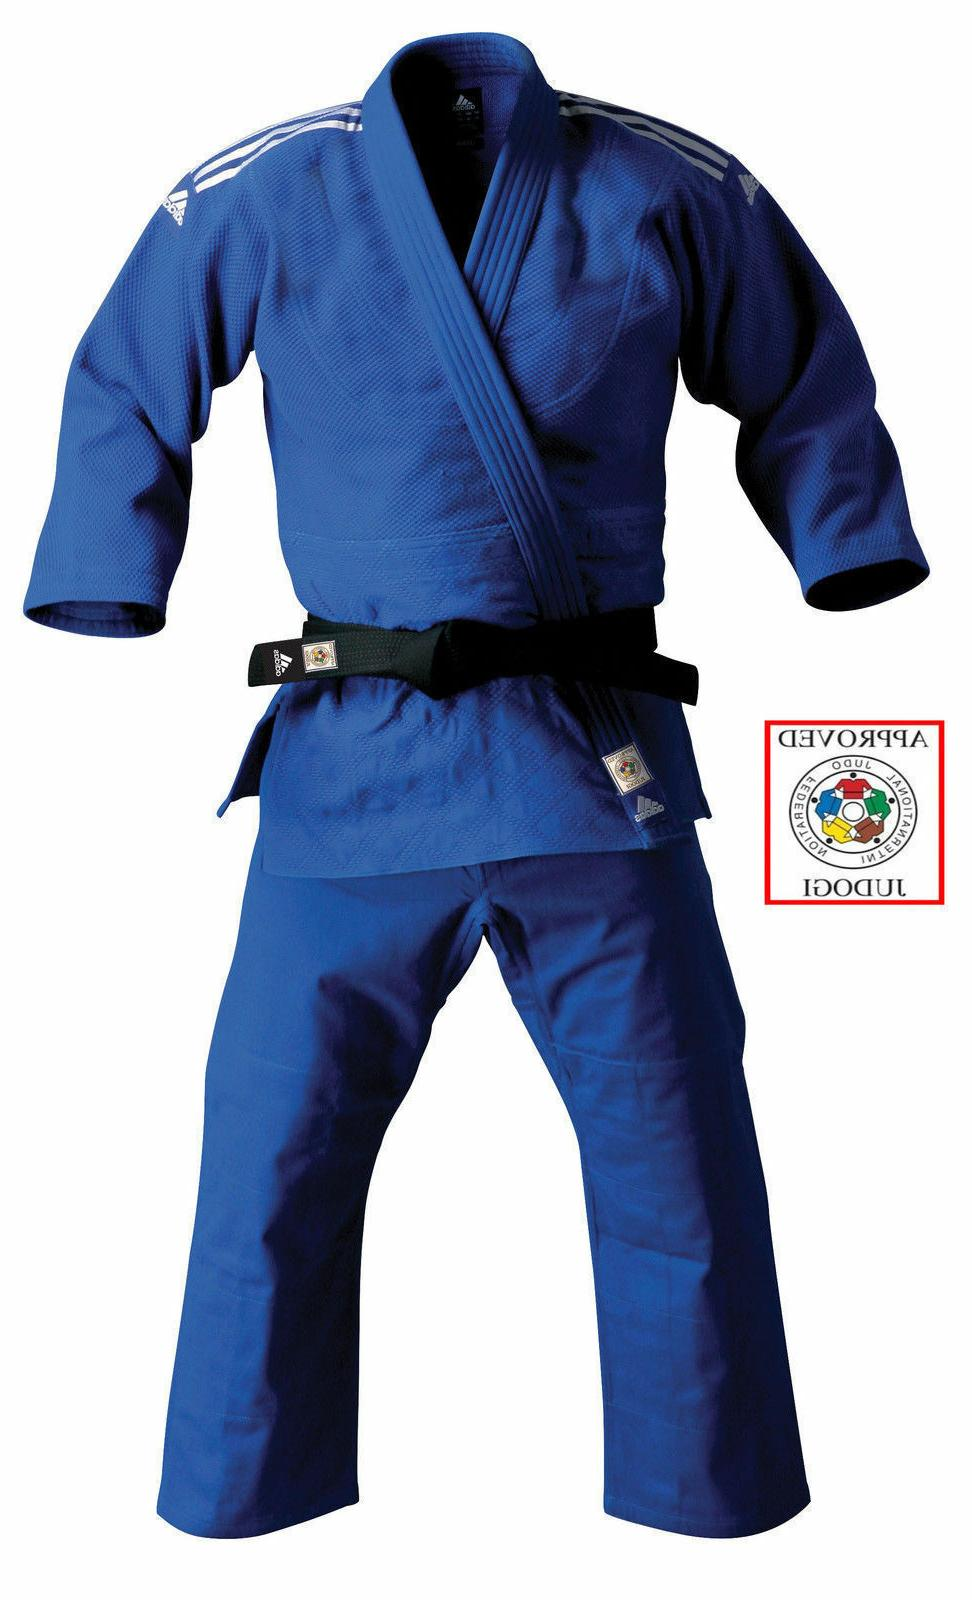 Adidas Judo Suit II 750g Blue Slim Fit Approved Adults Uniform